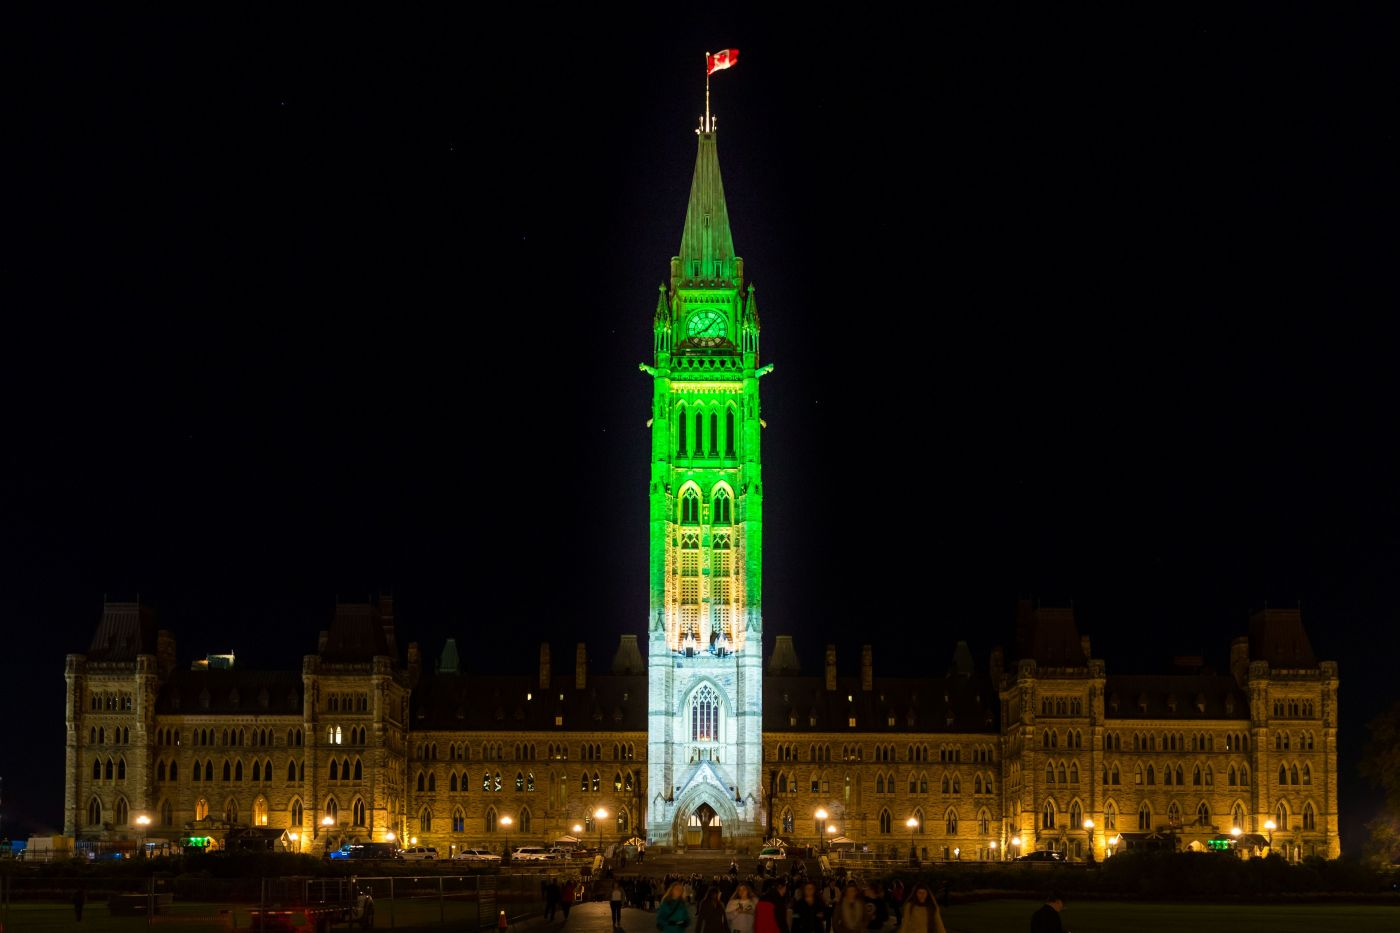 """"""" Colour photograph of a large, six-storey building at night. A Canadian flag flies at the top of the tower in the centre. The tower is illuminated in blue and green."""""""